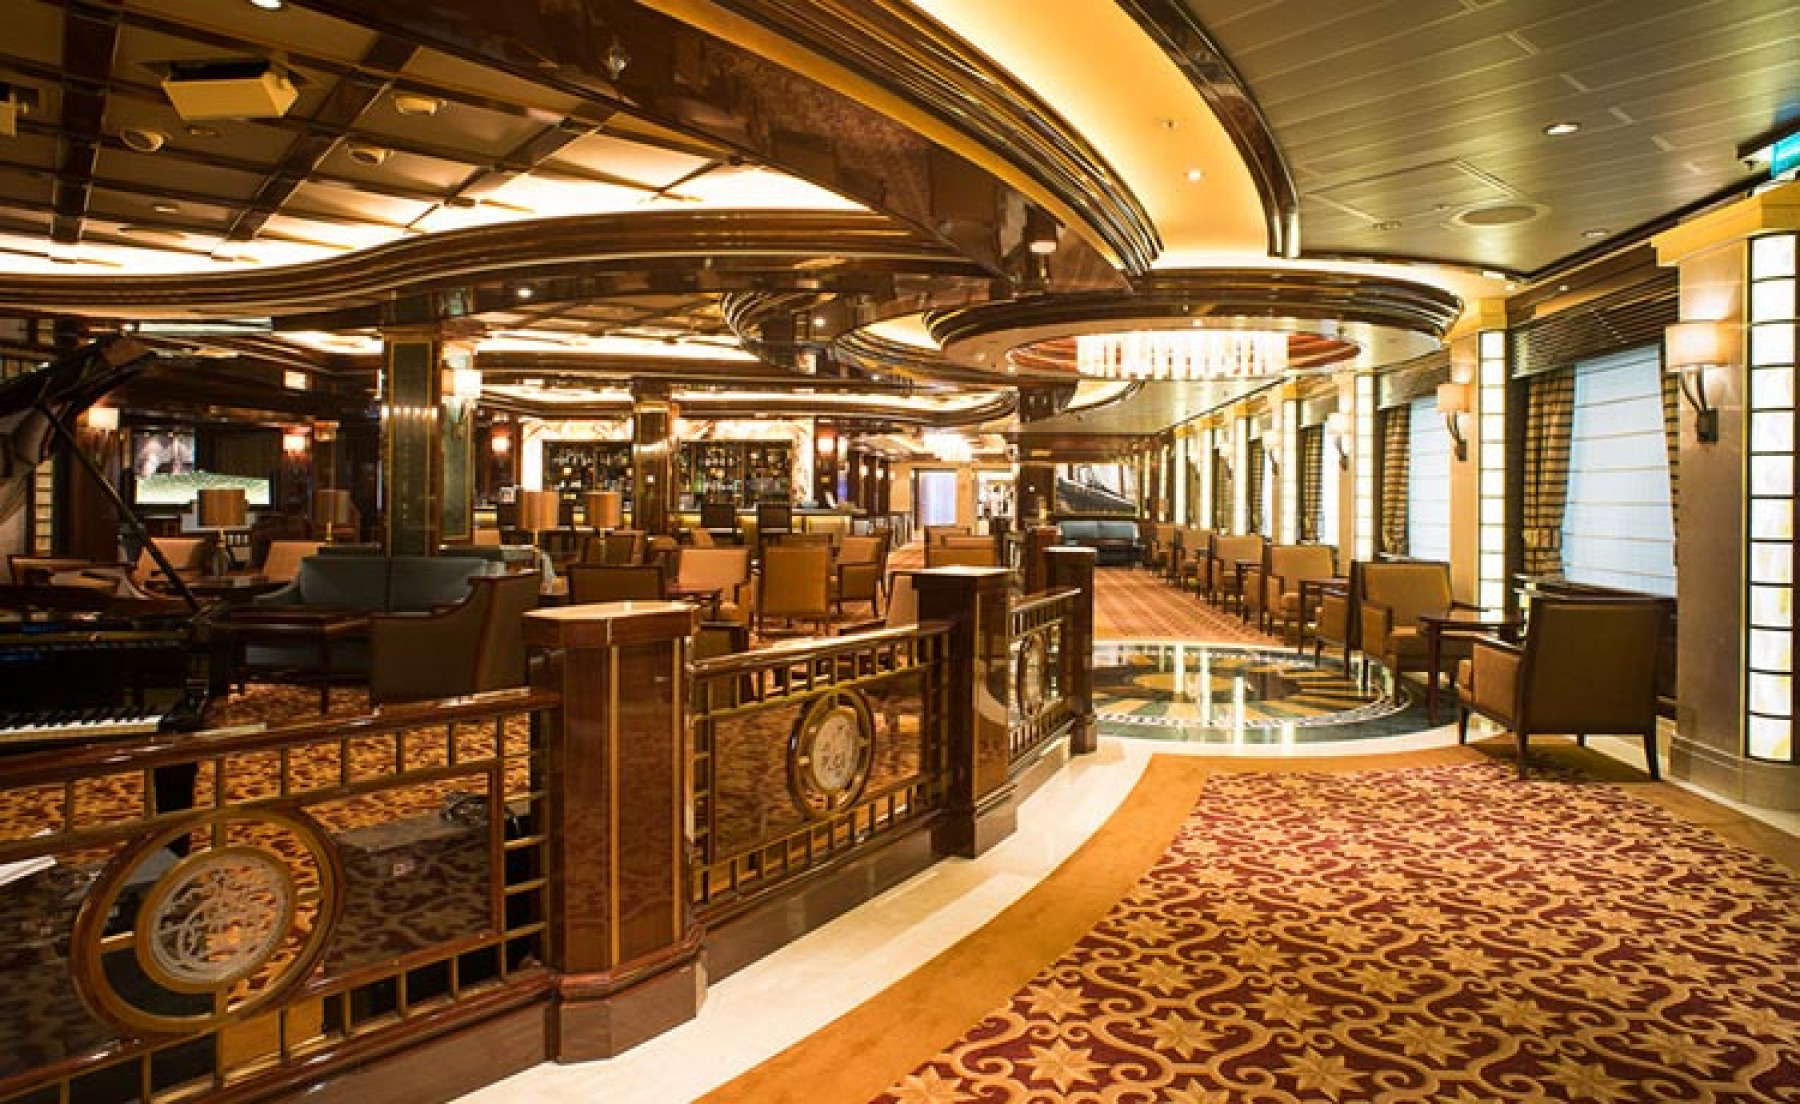 Princess Cruises Coral Class Interior wheelhouse.jpg